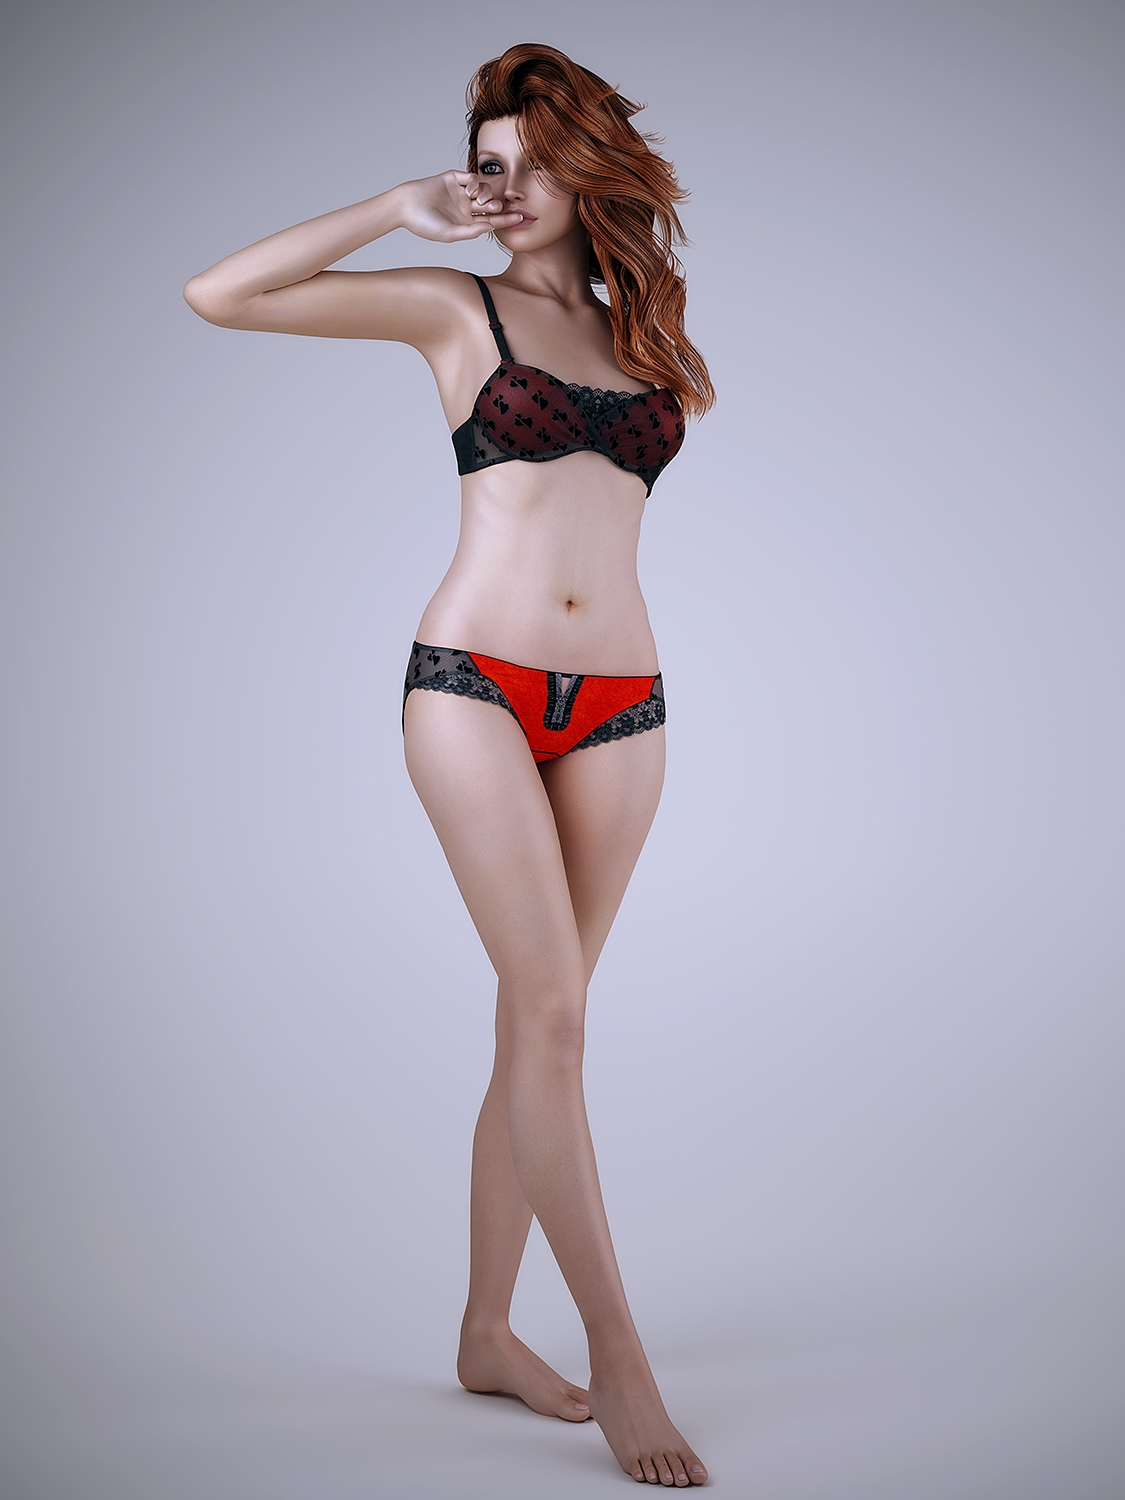 Rim the Redhead thumbnails models the best